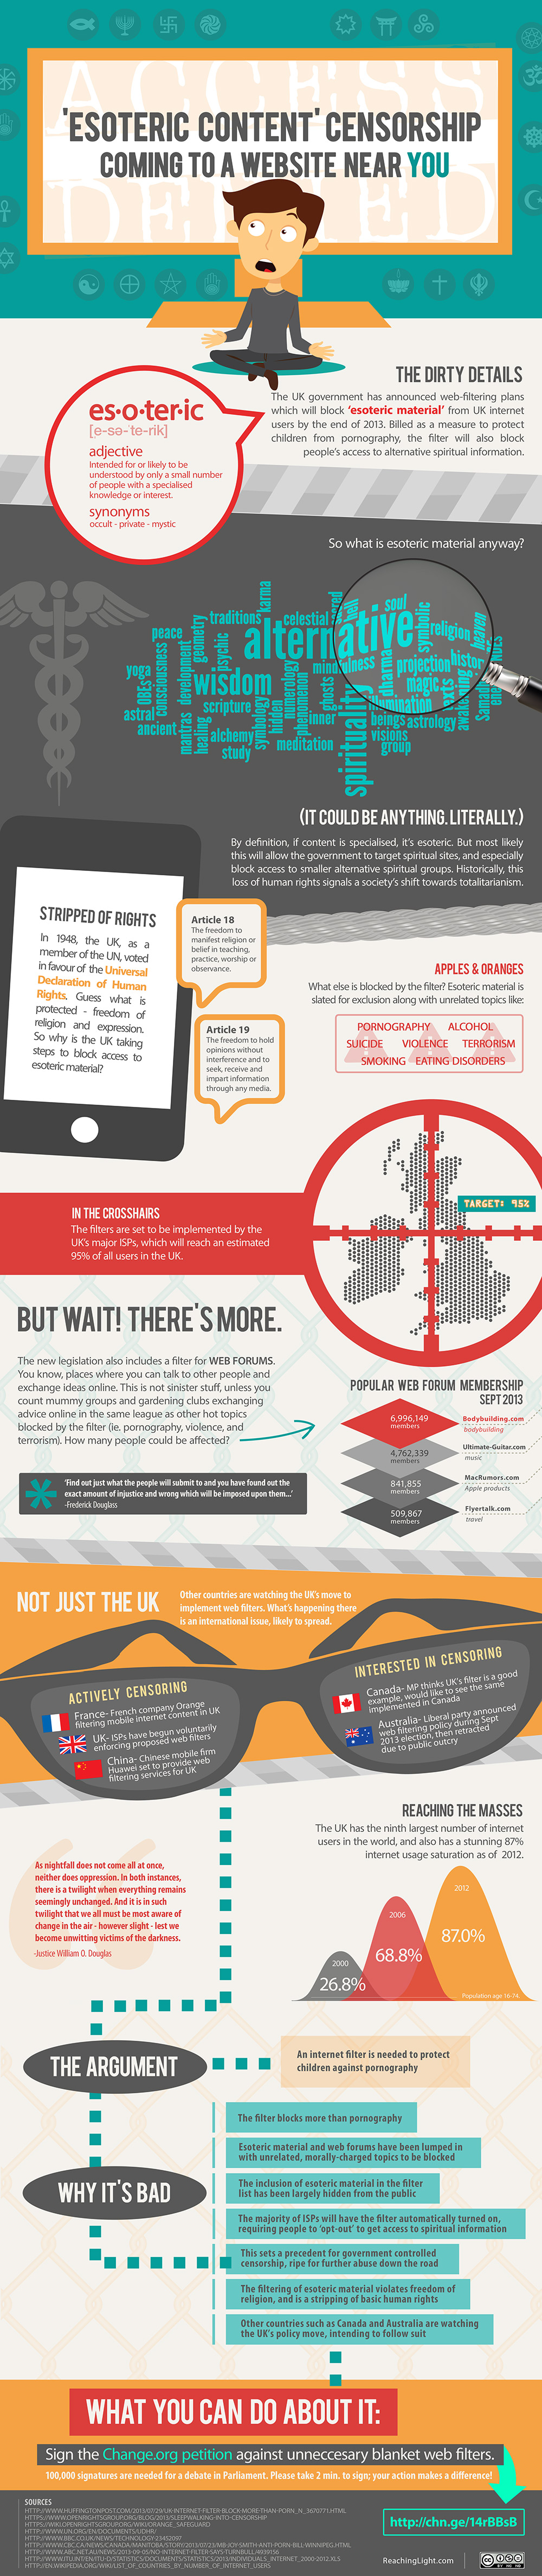 Infographic: UK Filter to Block �Esoteric Content� - Worldwide Implications